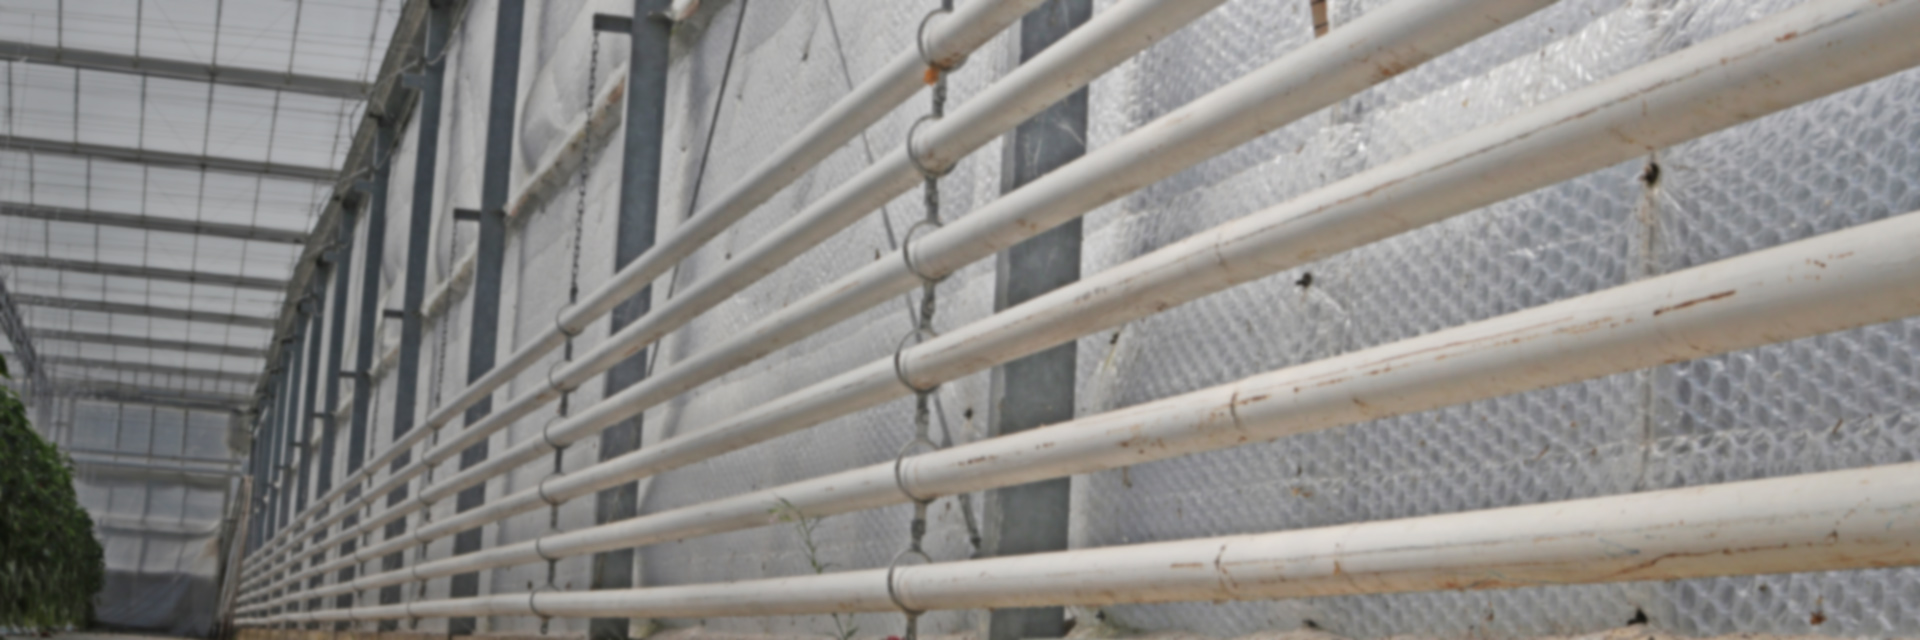 Pipeprotect for efficient heating pipes in your greenhouse